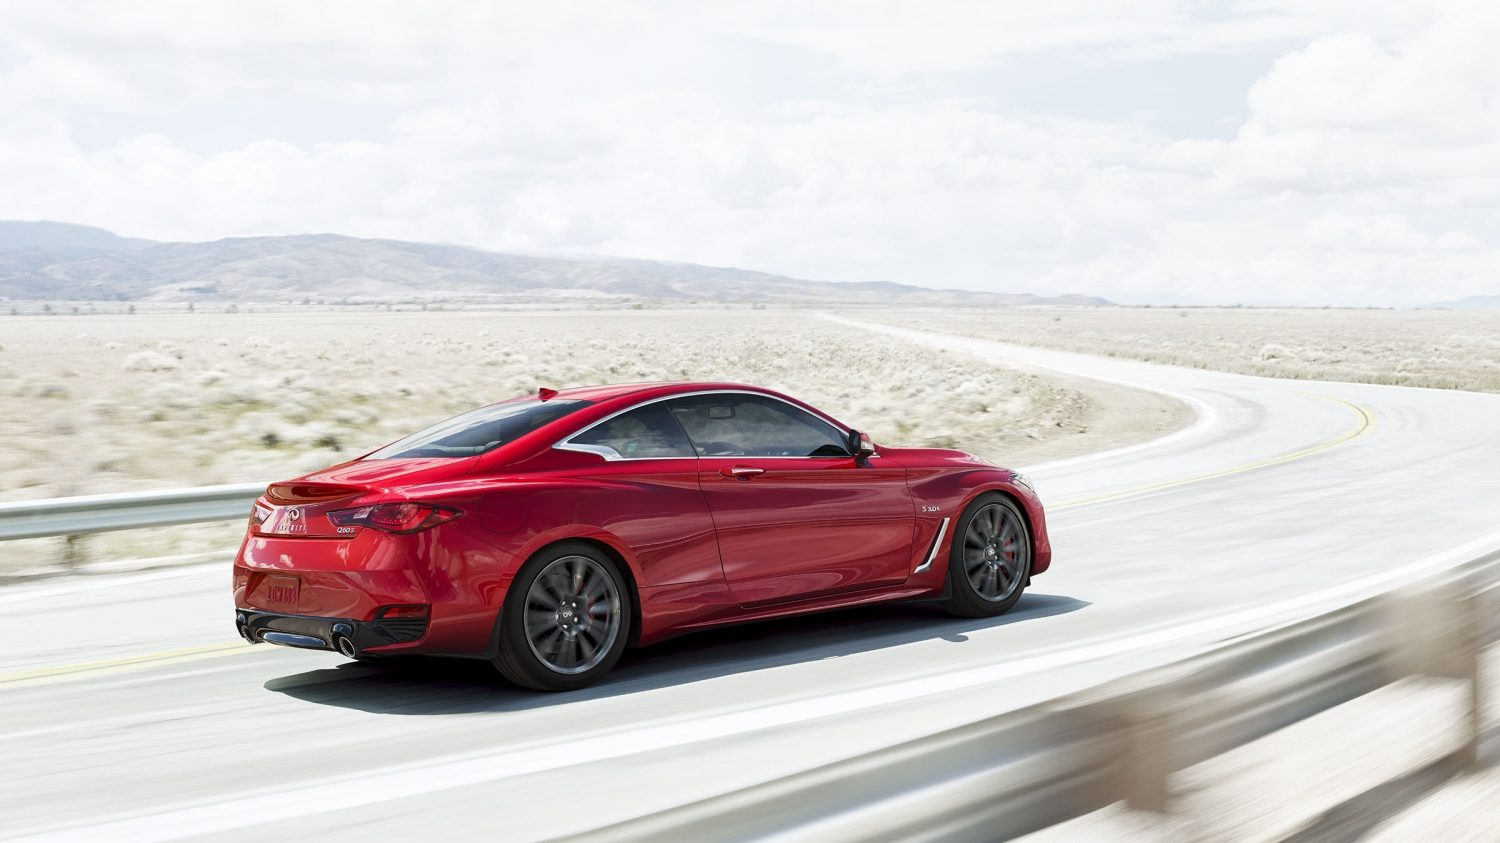 2018 INFINITI Q60 Red Sport 400 Performance Sports Coupe | Safety and Control